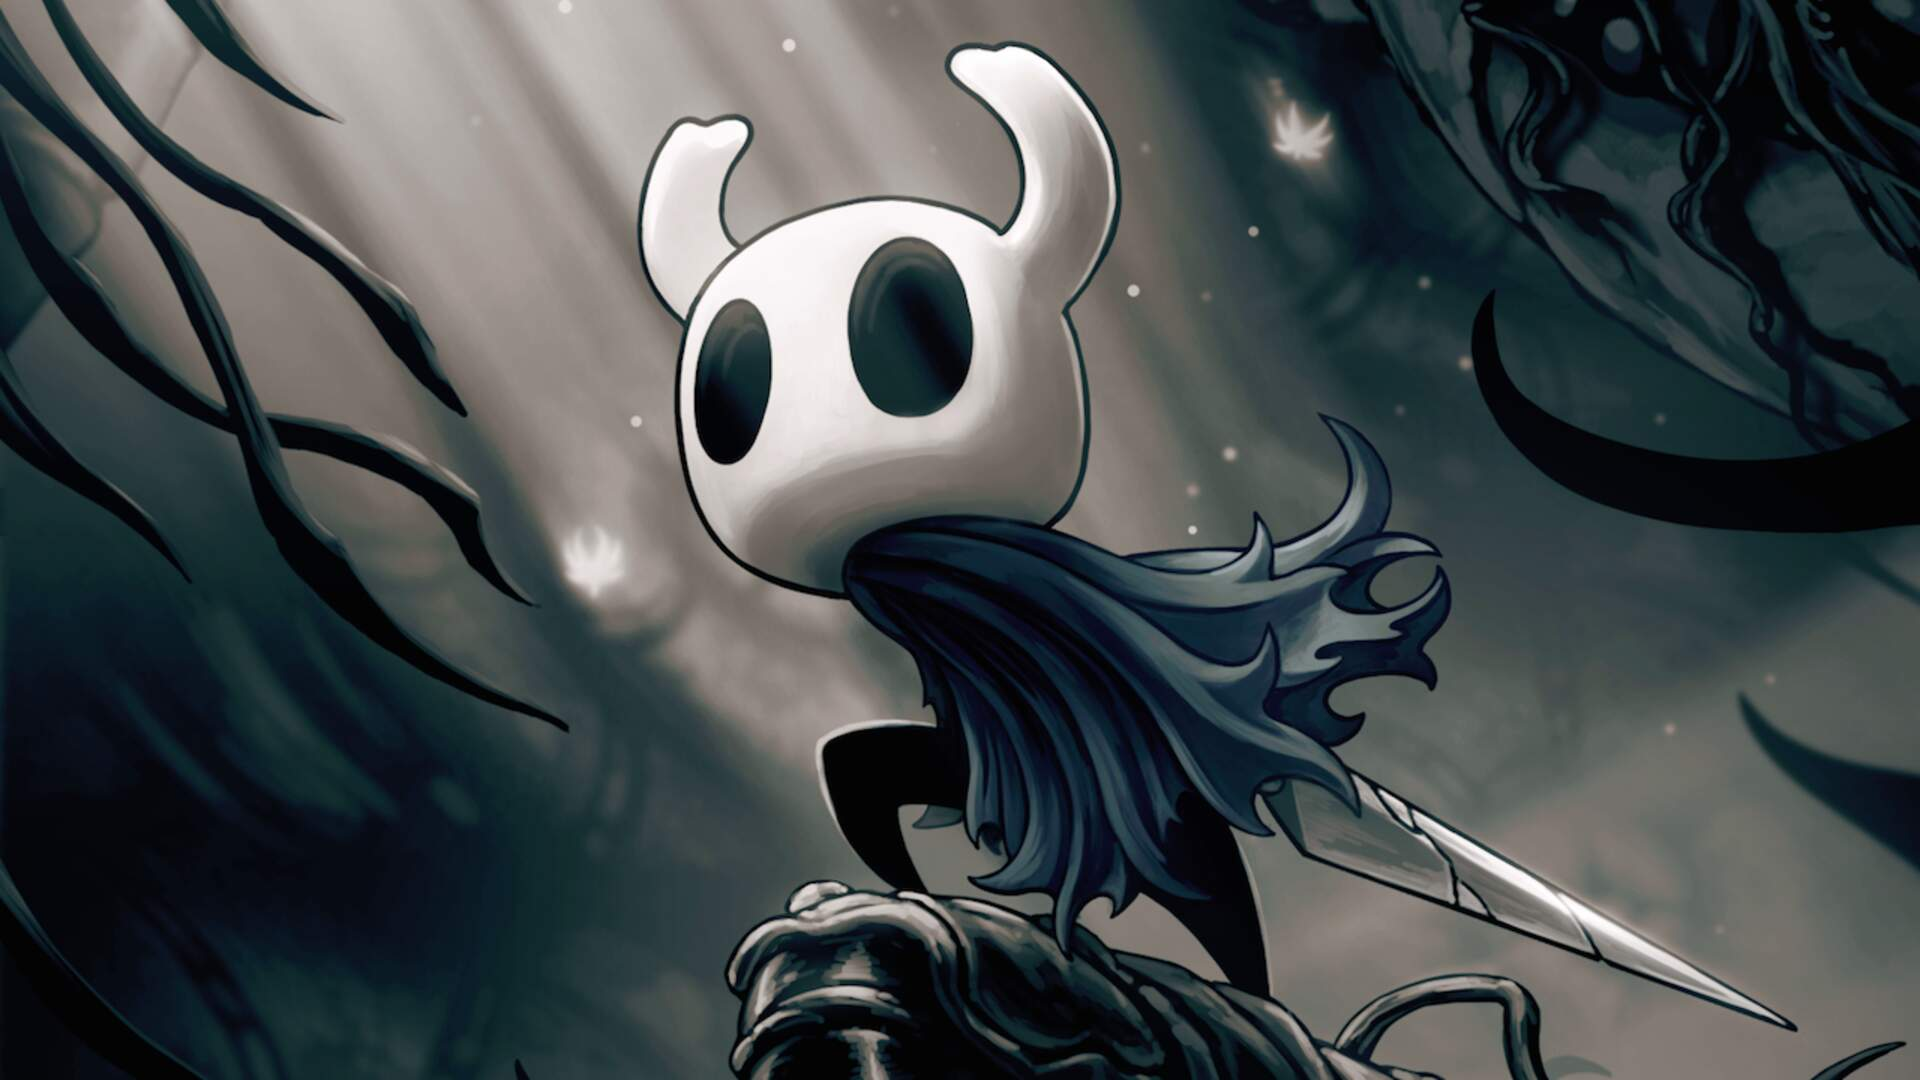 Humble Launches Bundle Featuring Hollow Knight and Other Popular Games in Support of Australia Fire Relief